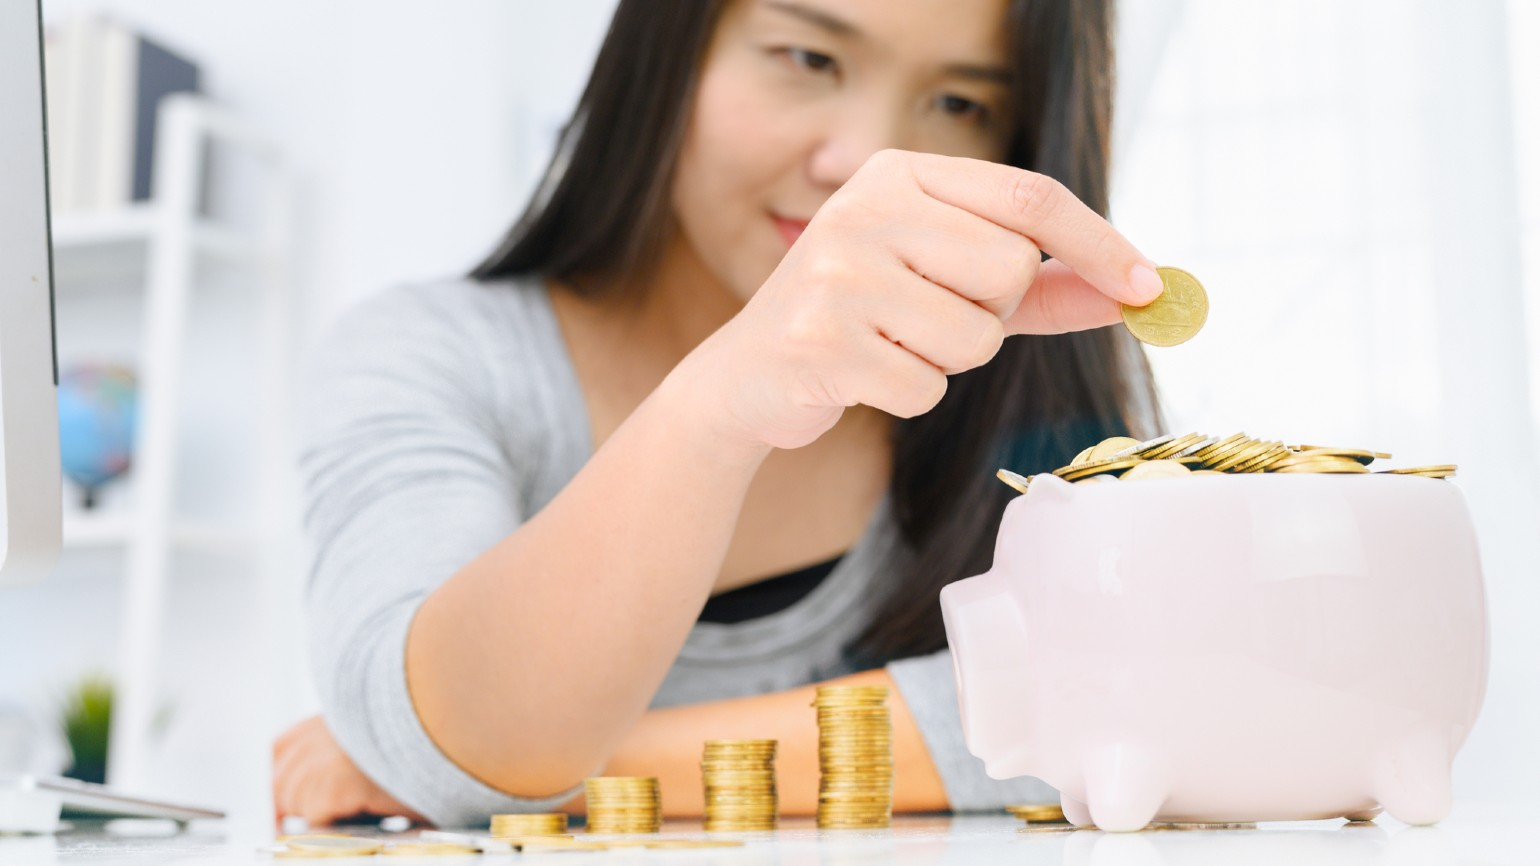 Young woman putting coins into piggy bank